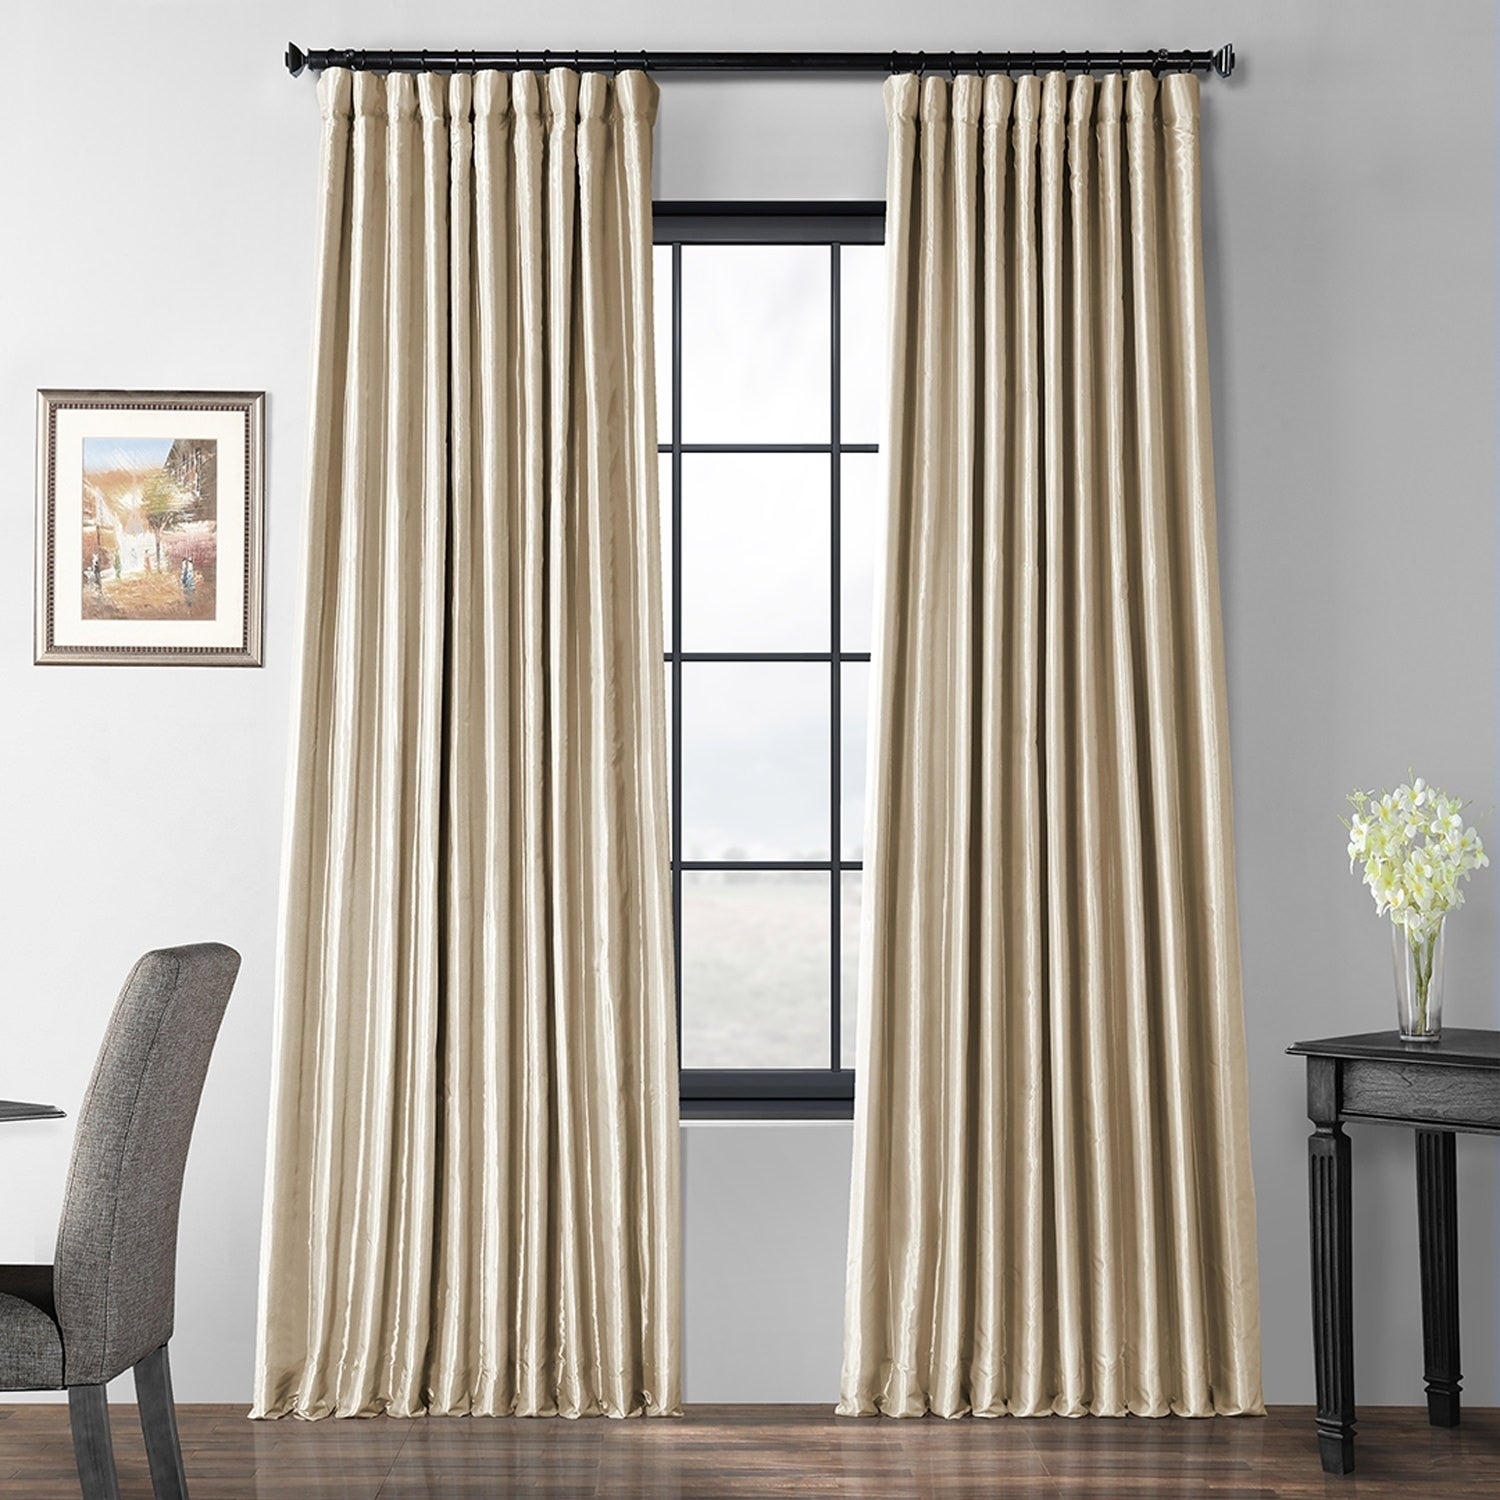 Exclusive Fabrics Glazed Parchment Blackout Extra Wide Faux Silk Taffeta Curtain Intended For Faux Linen Extra Wide Blackout Curtains (View 18 of 20)